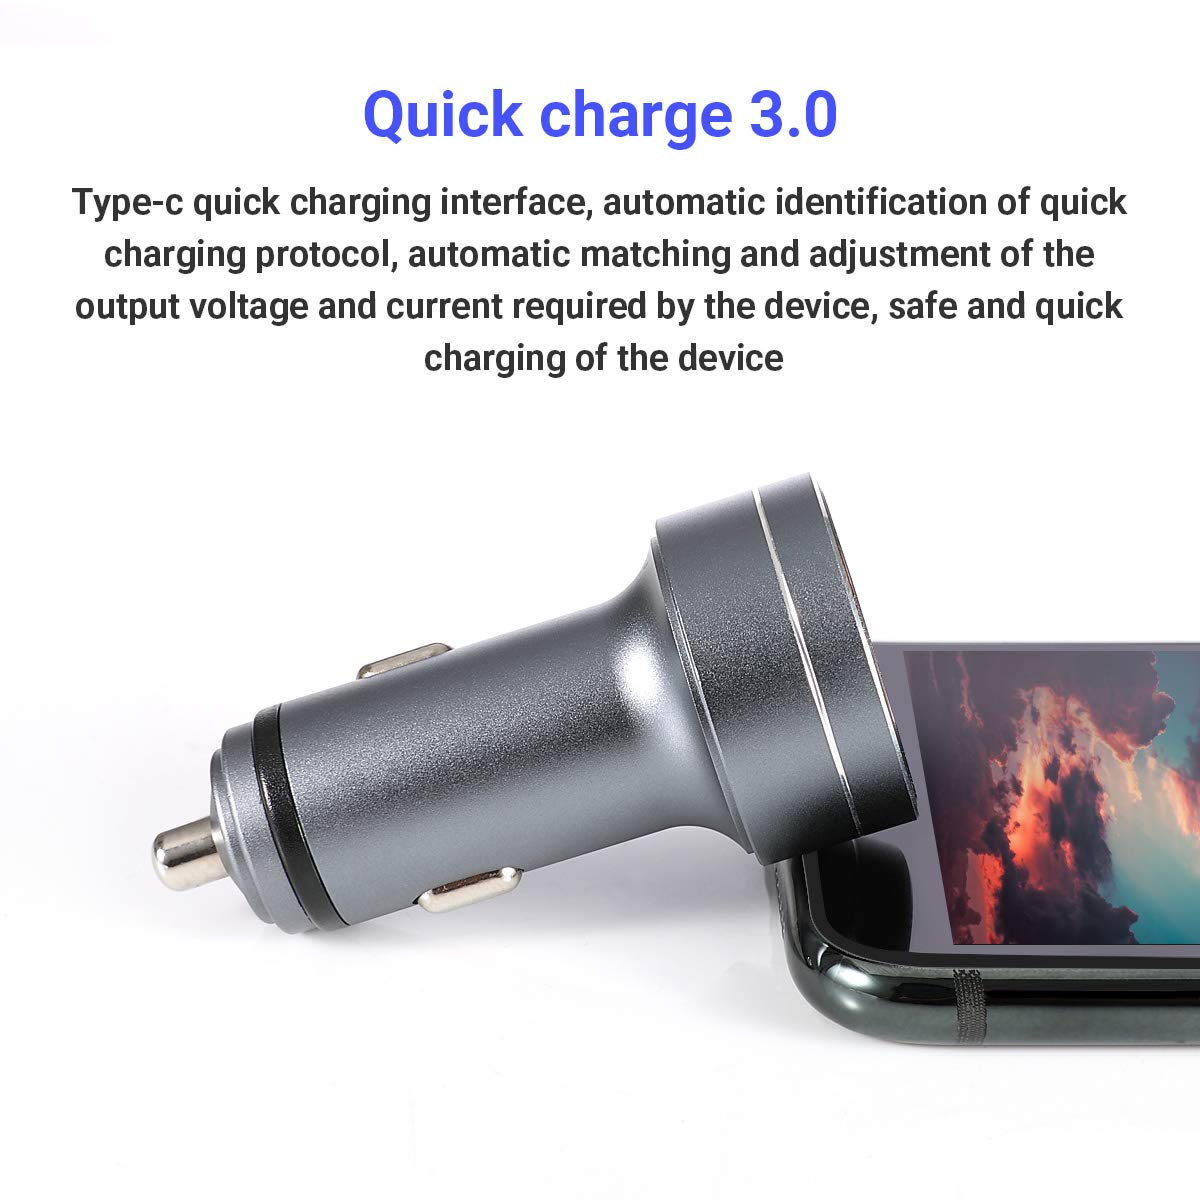 Ipad Pro\Mini,Samsuny Galsxy Note9 and More. USB Type C Car Charger,Quick Charge 3.0 Adapter,45w 3.4A 2-Port with LED Compact Car Charger,Compatible with iPhone Xs\Max\XR